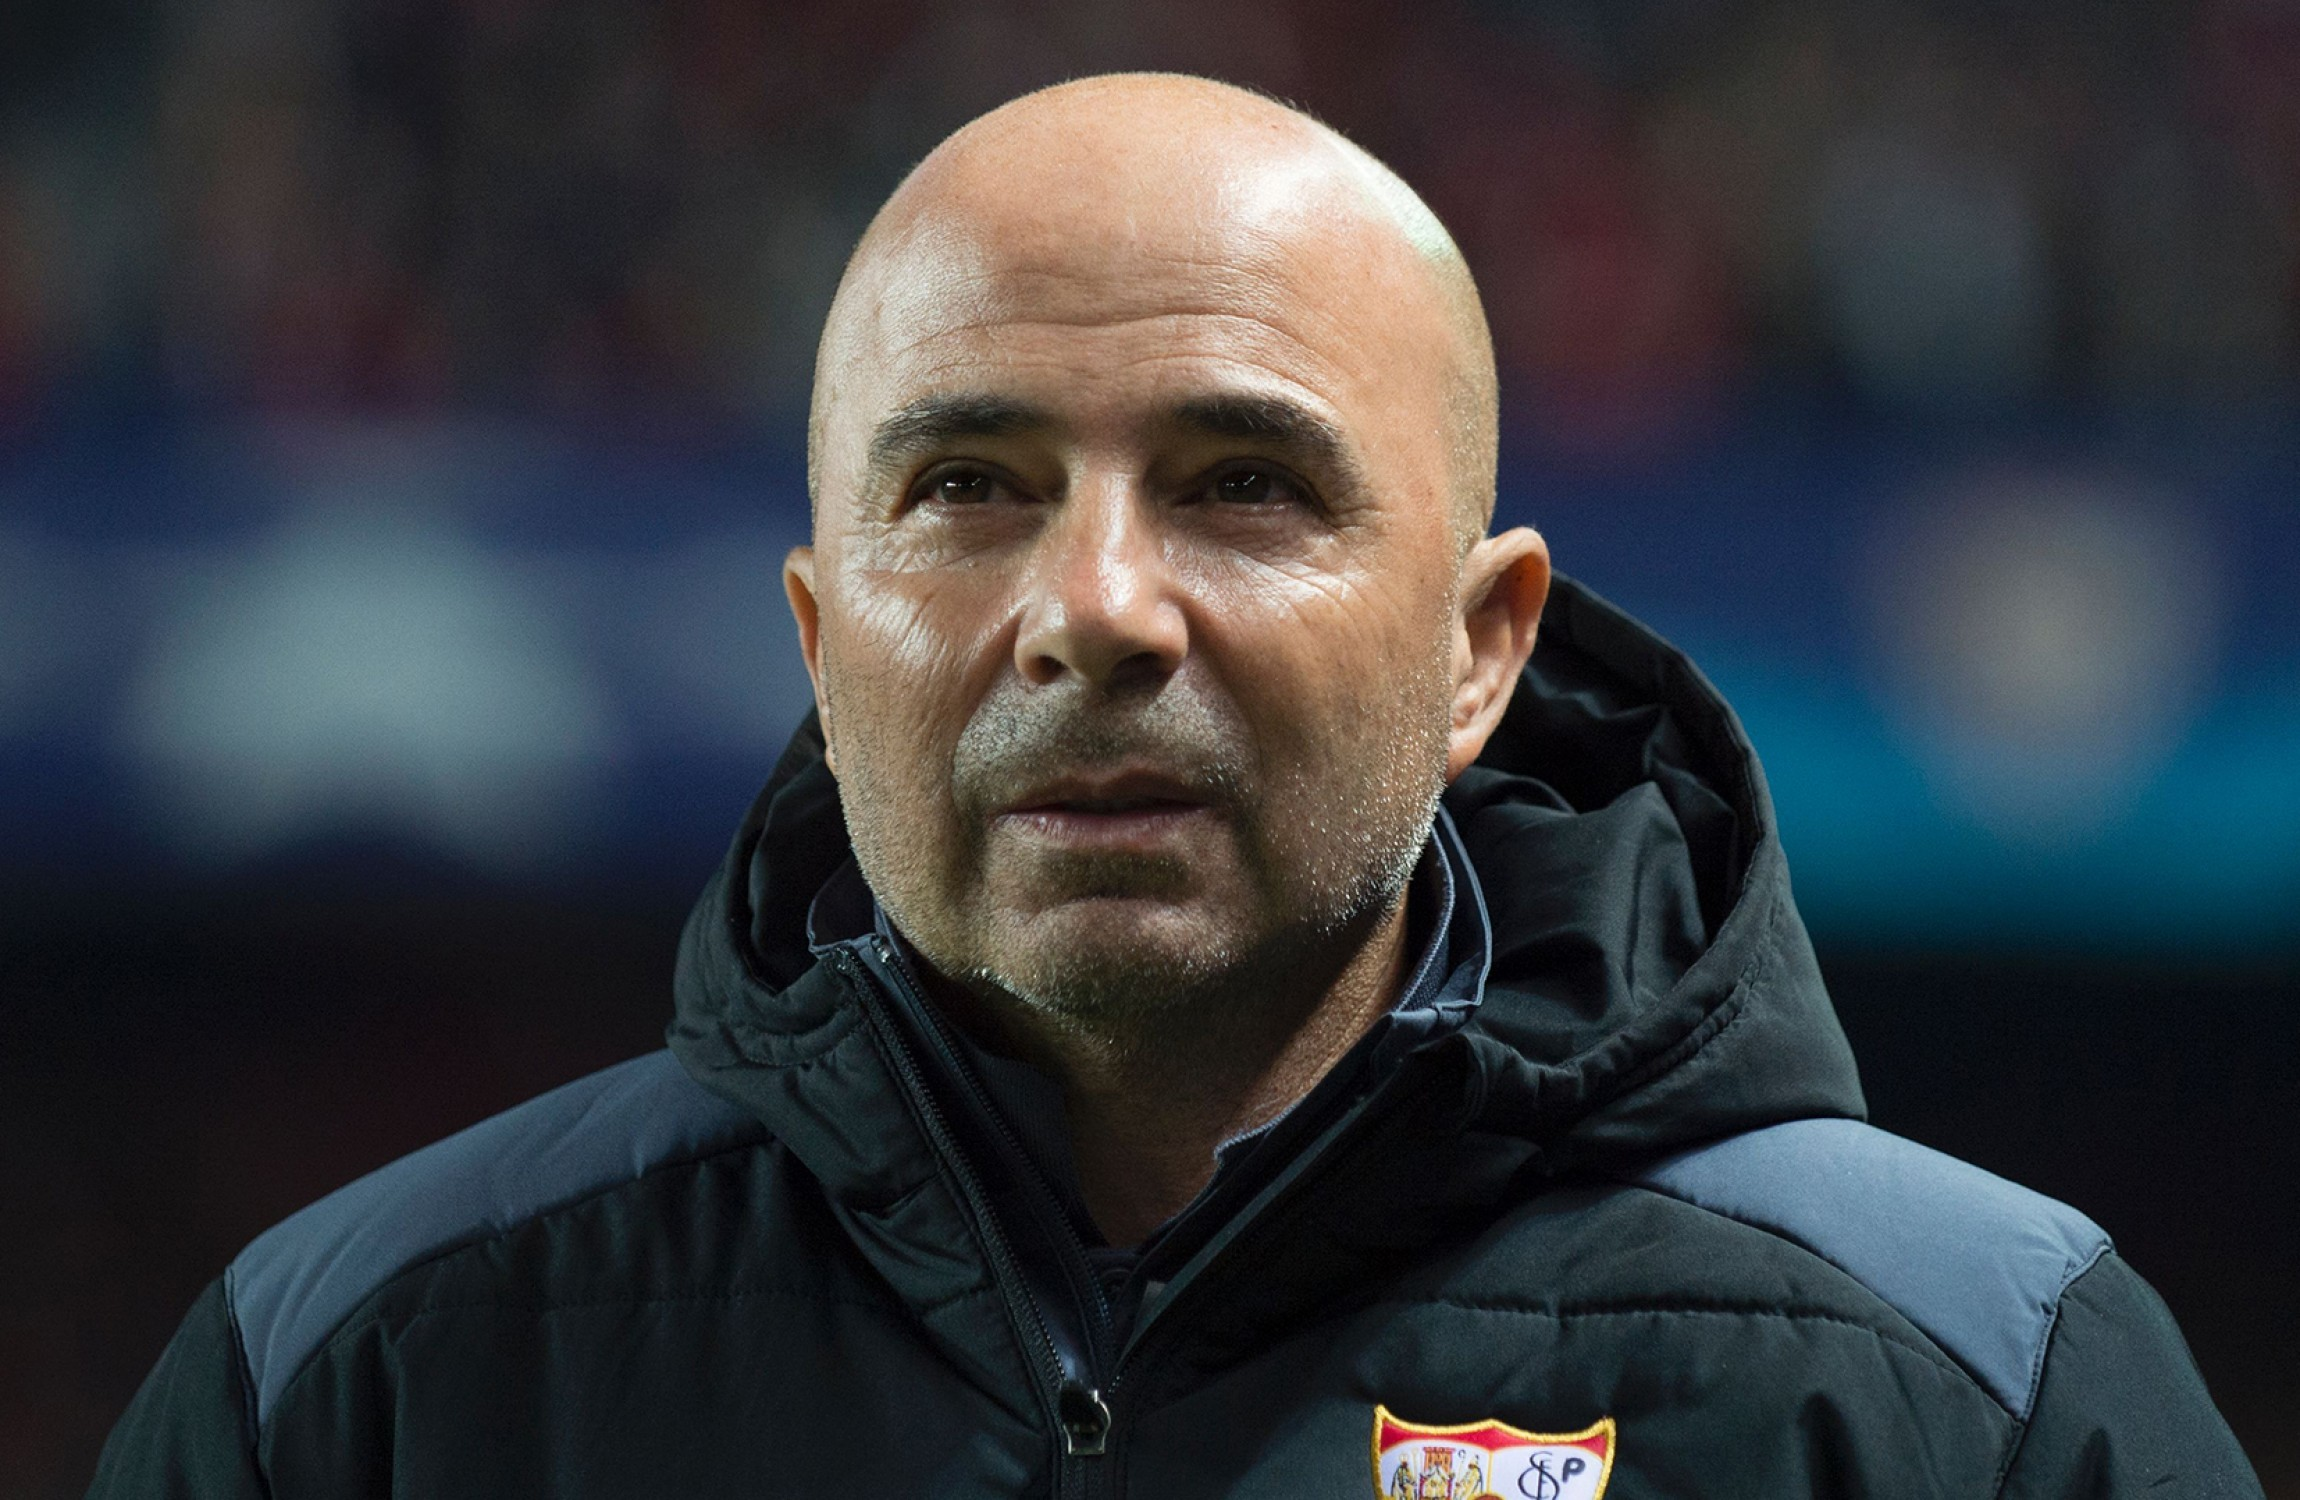 Getting best out of Messi, Sampaoli's job as new Argentina boss